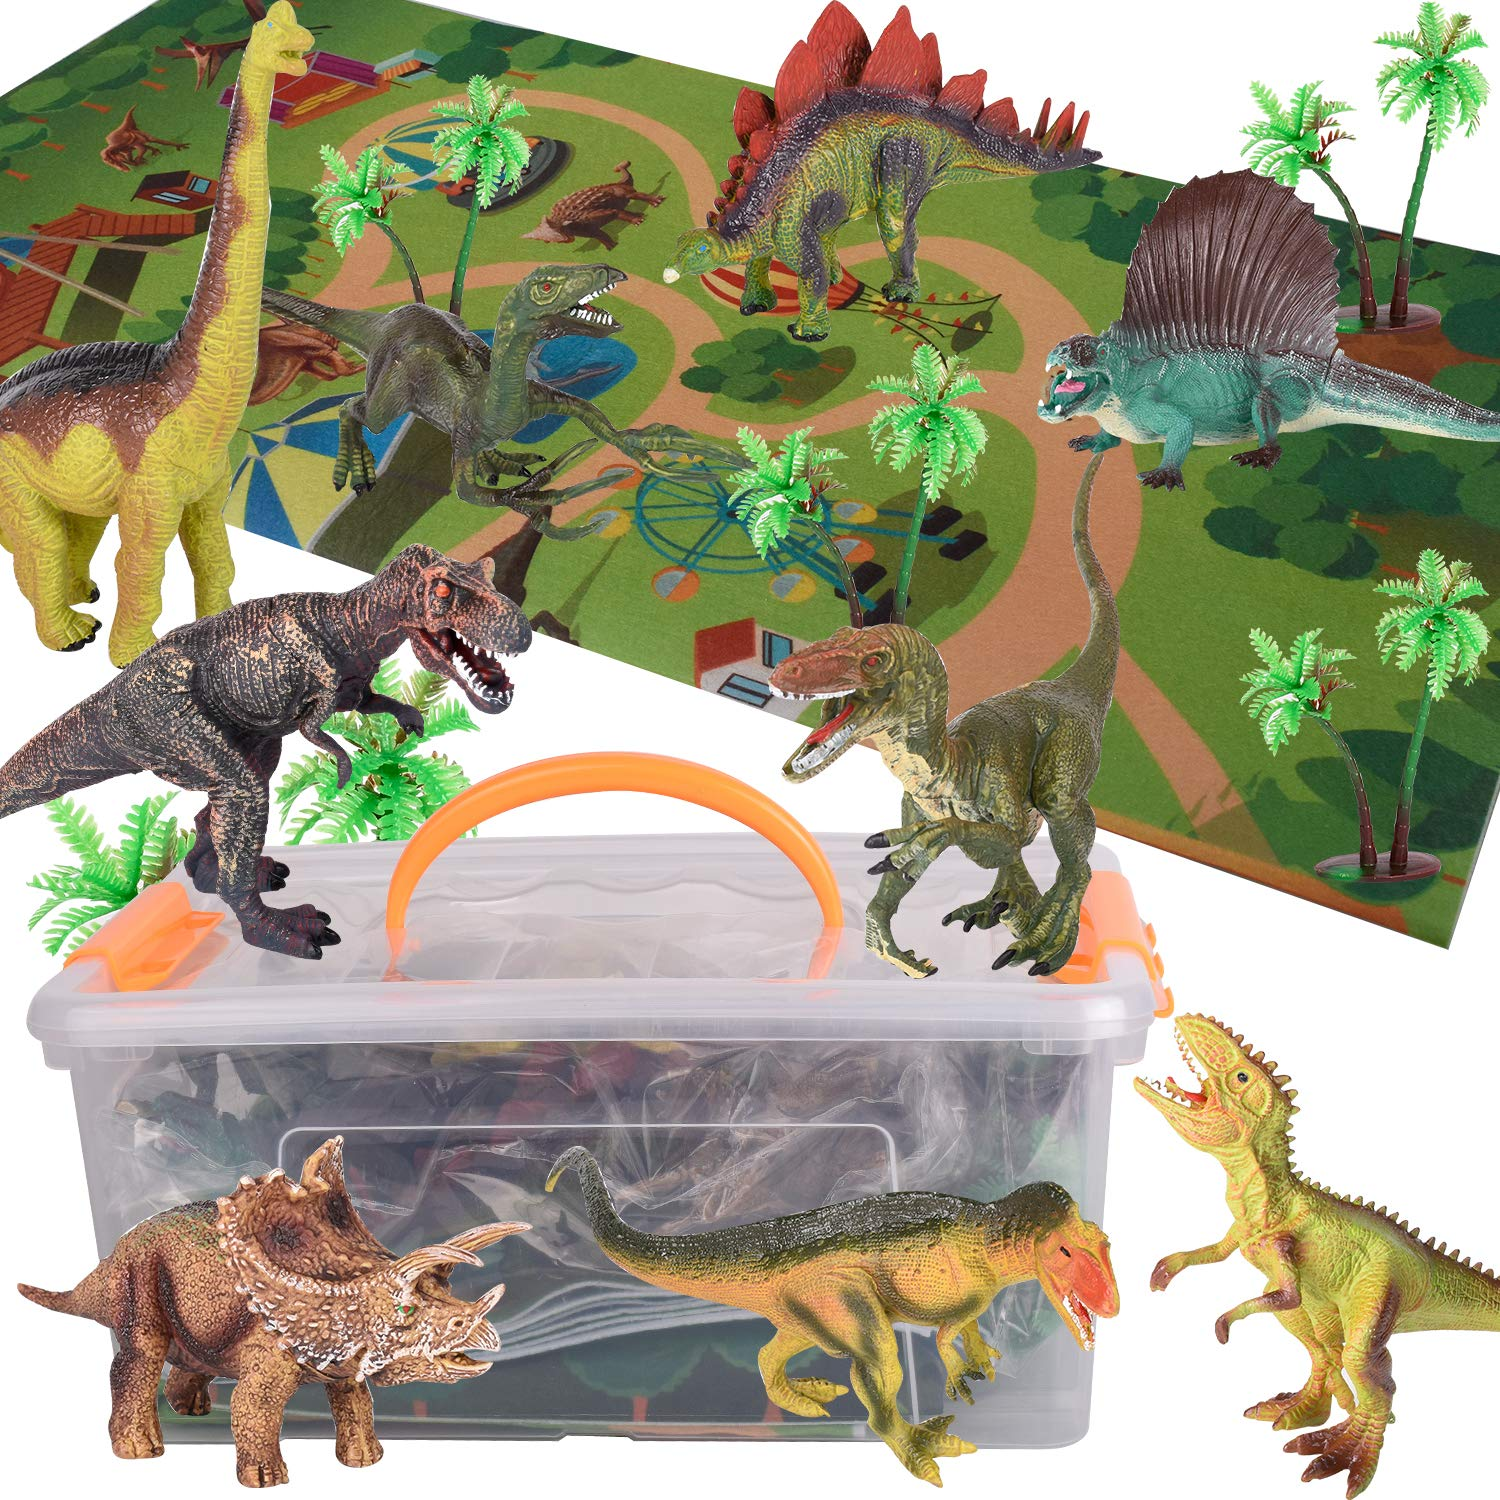 for Kids 12 Pieces Dinosaur Toy Set with Activity Play Mat,Dinosaur World Models Playset Including T-Rex Triceratops Velociraptor Boys /& Girls